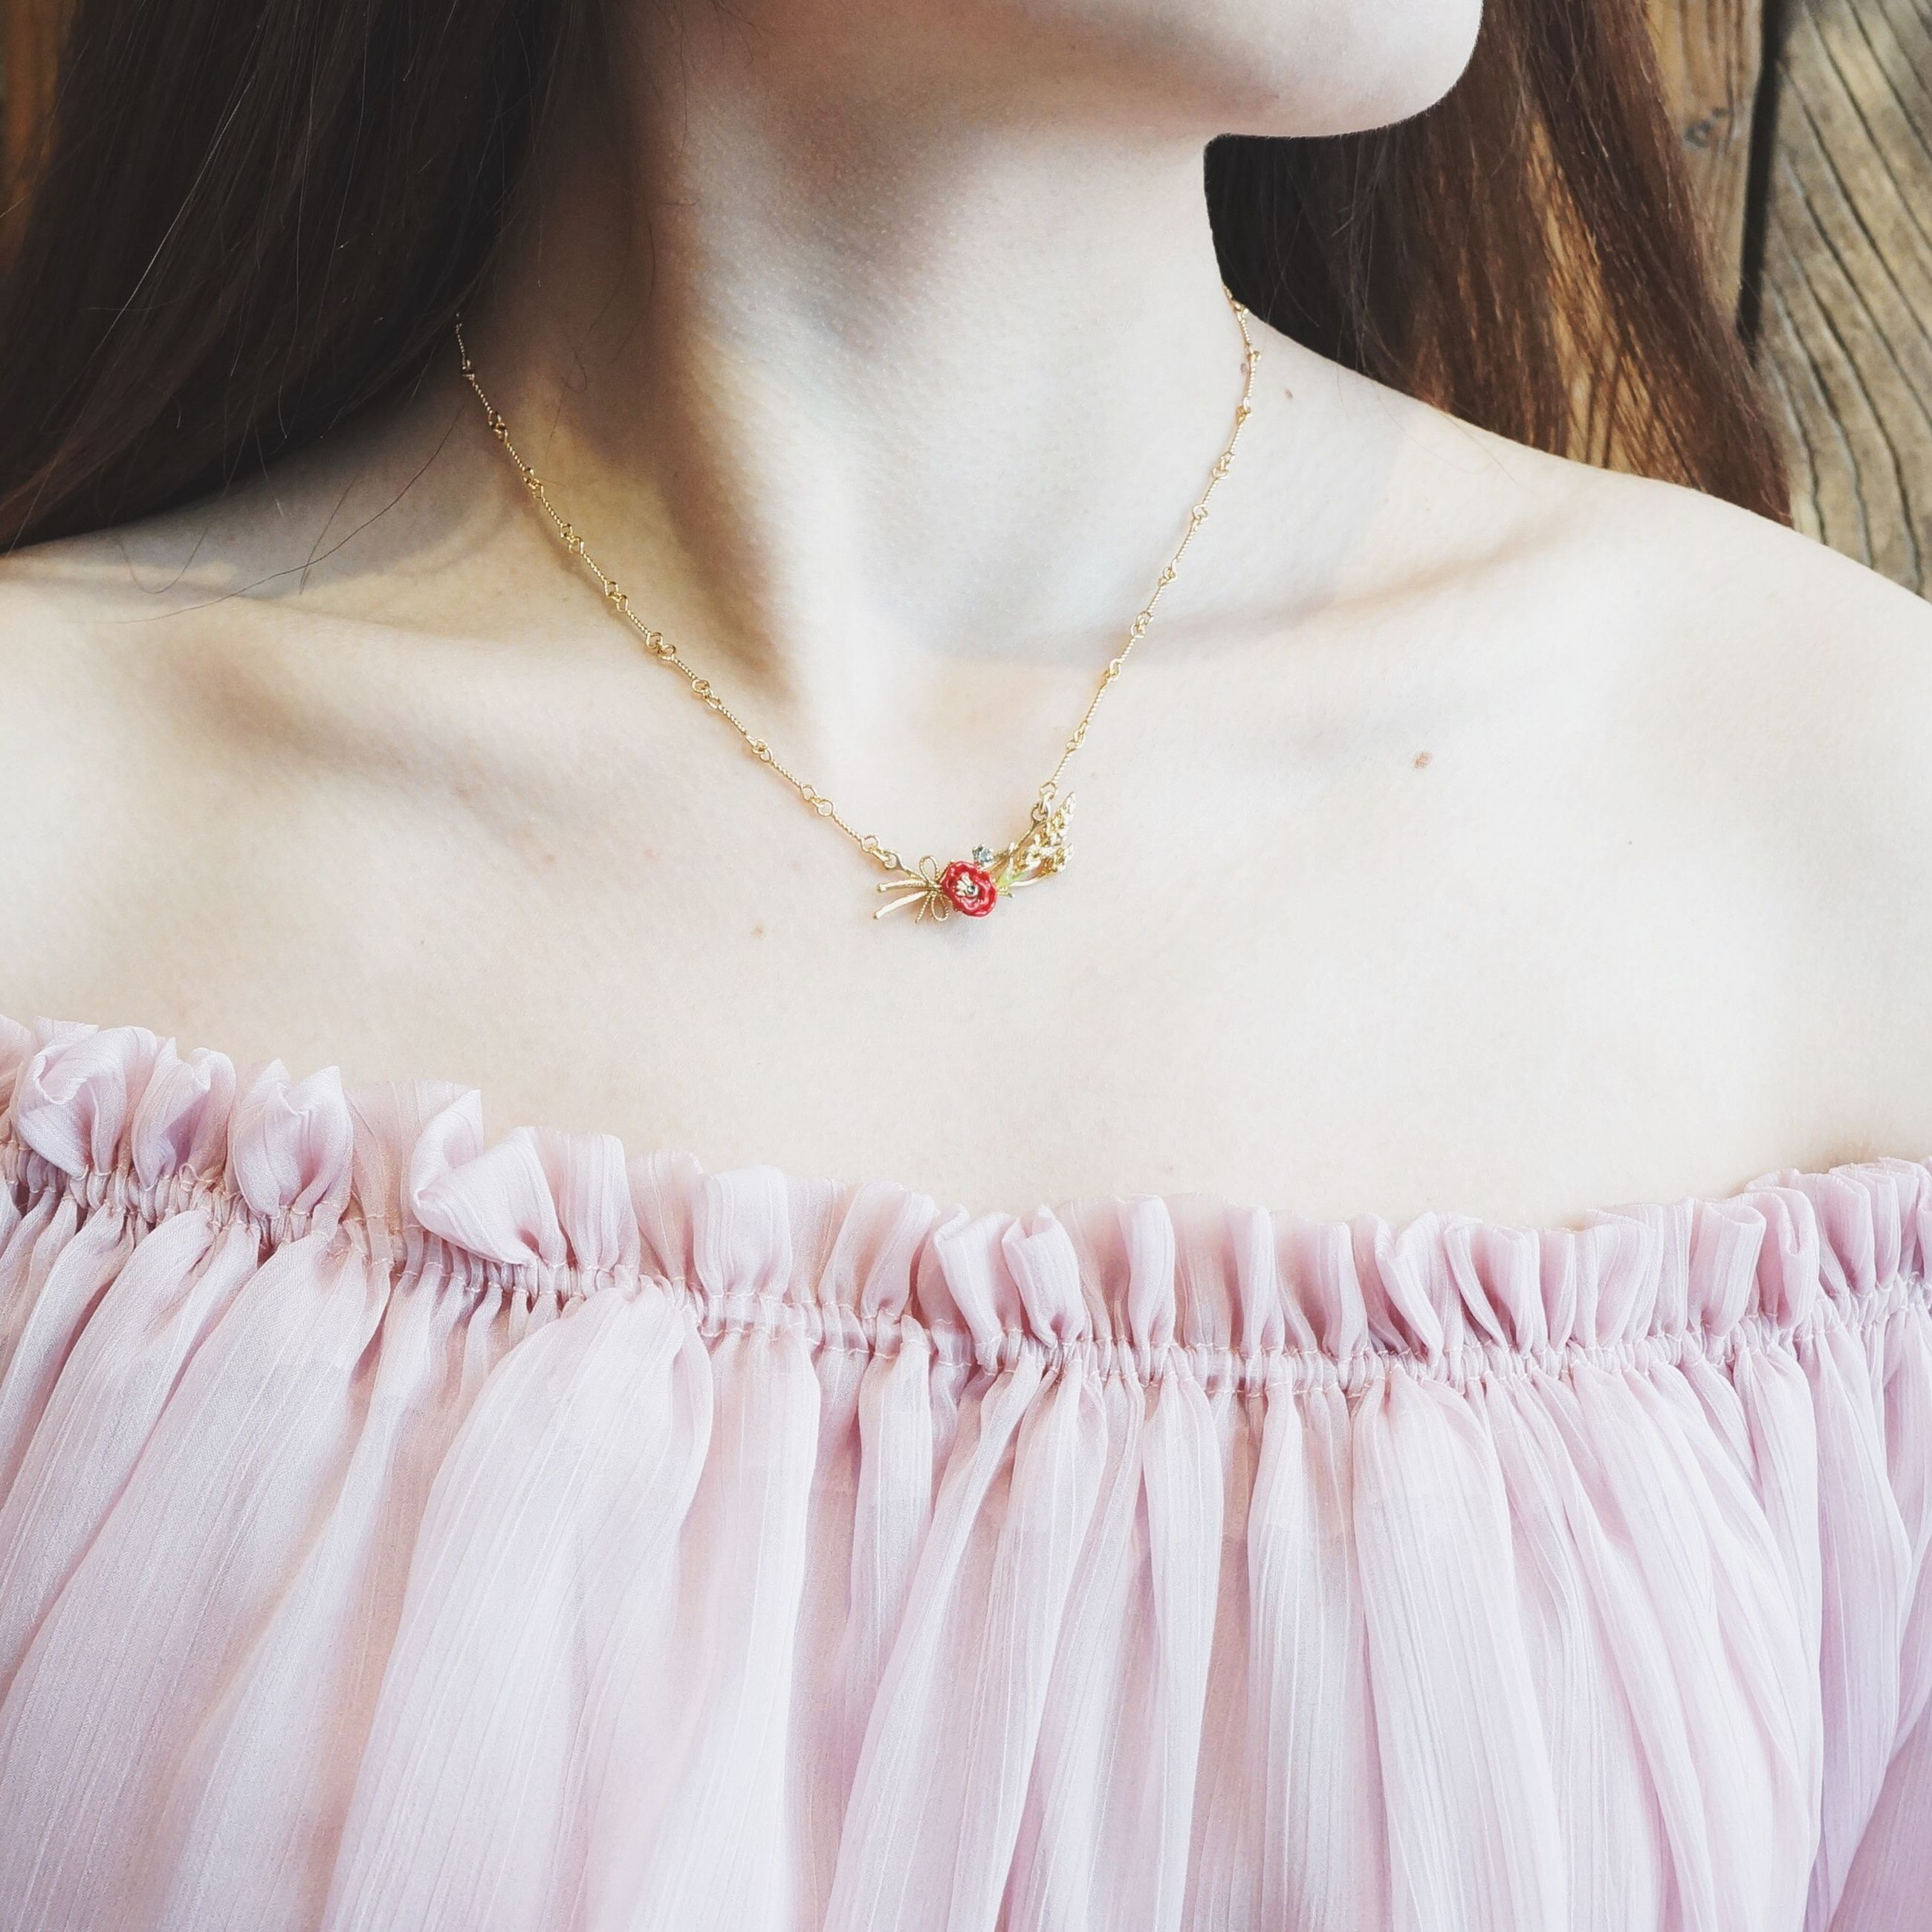 necklace, midsection, one woman only, close-up, adults only, one person, human body part, jewelry, women, only women, indoors, adult, people, wedding dress, day